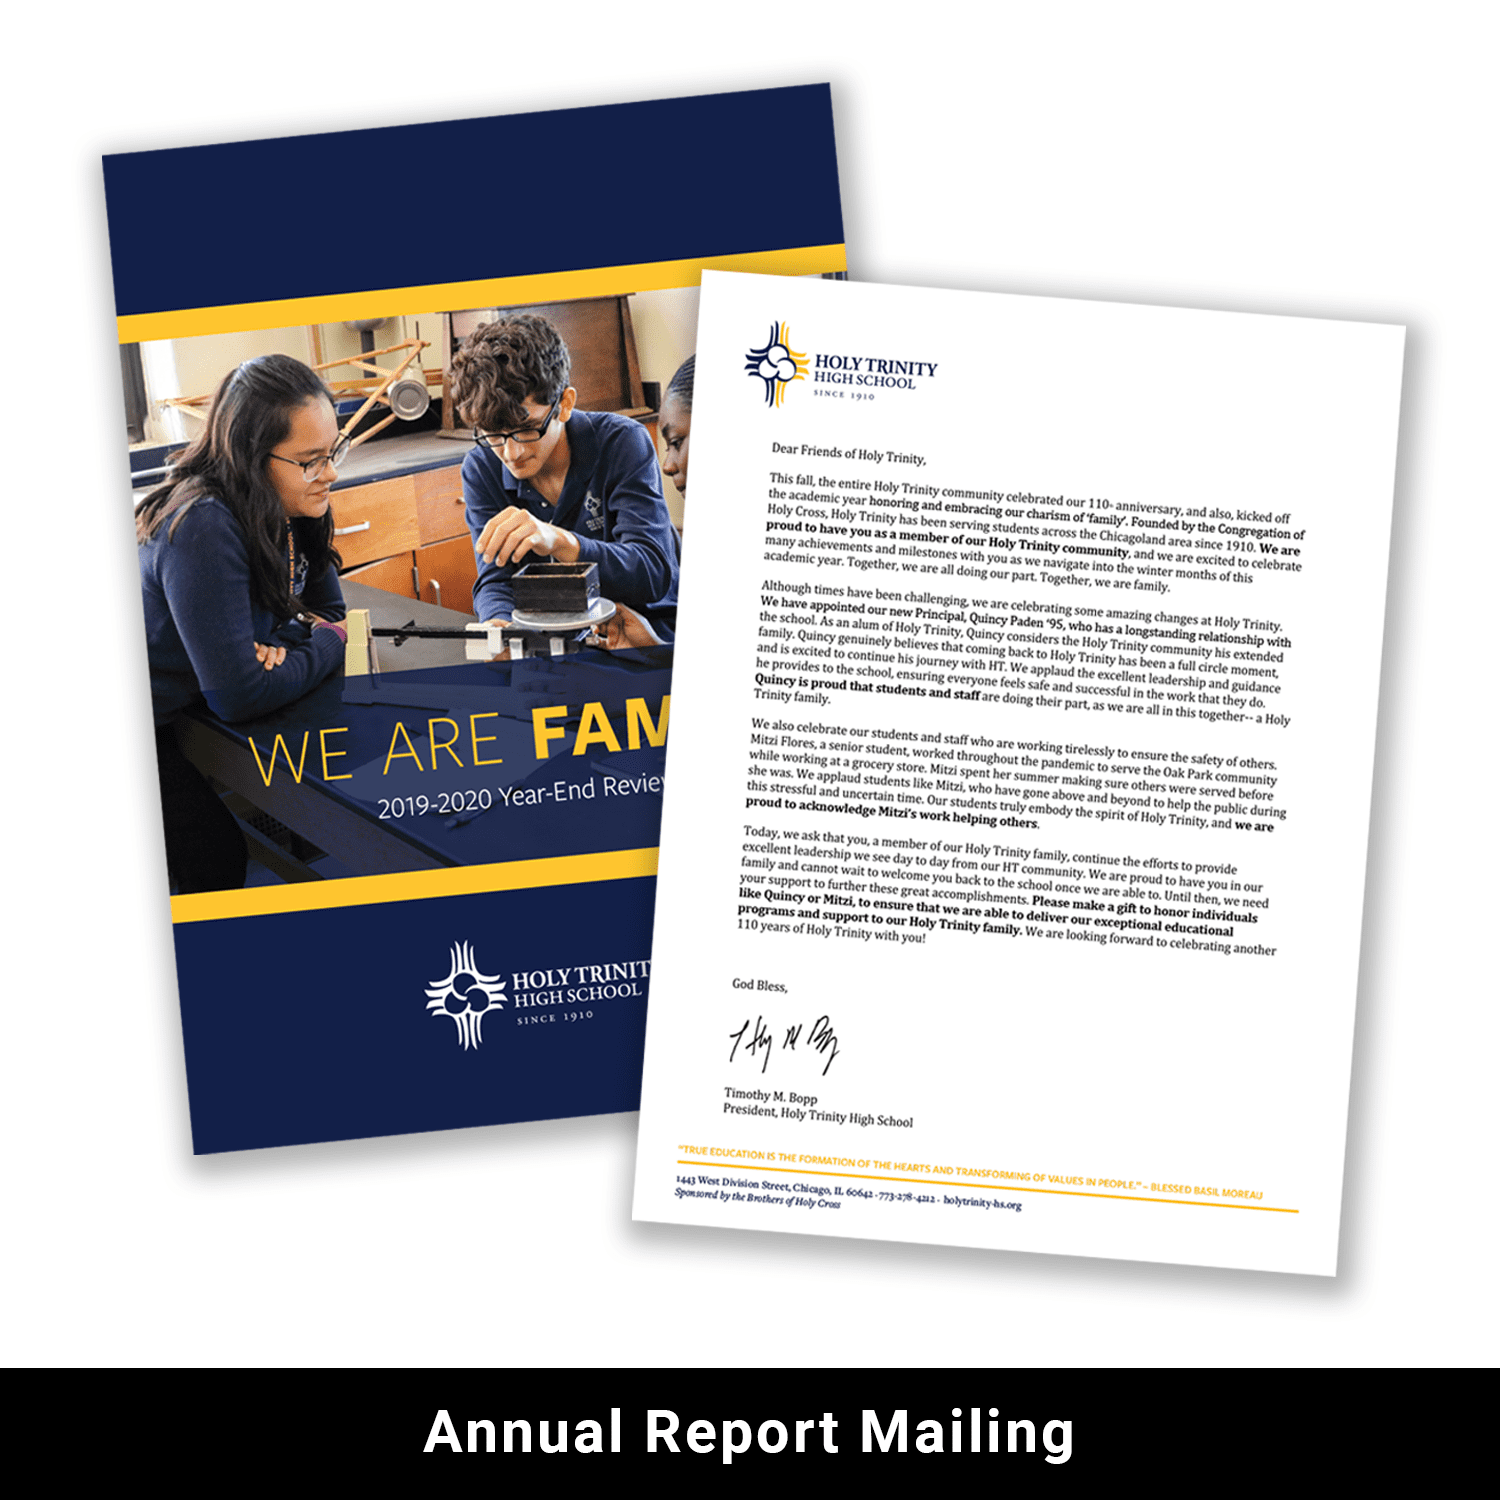 Annual report mailing example